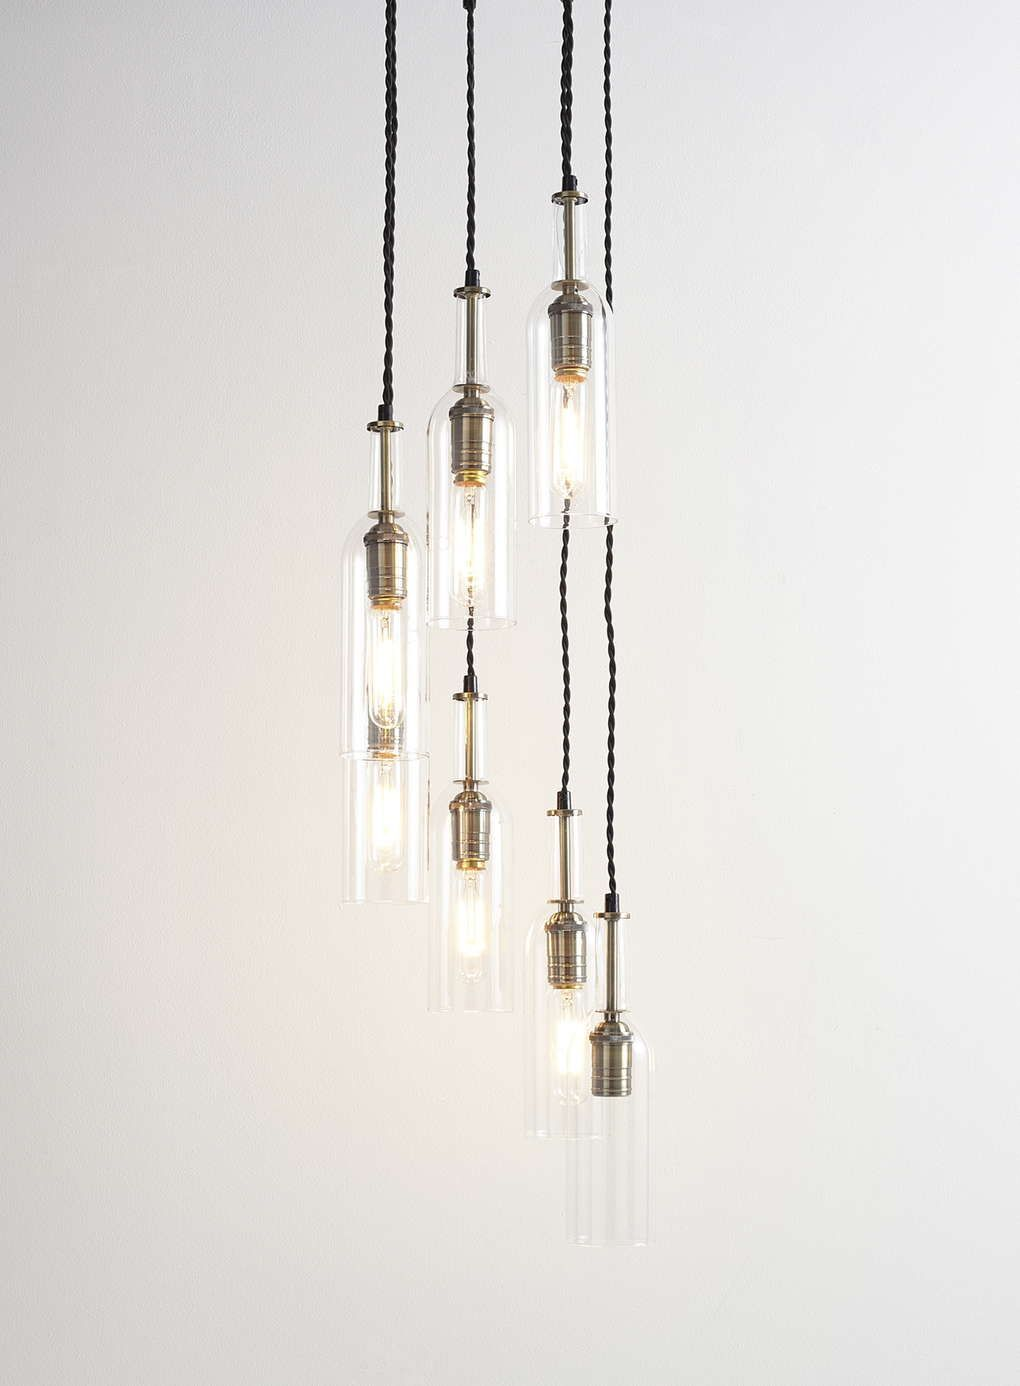 Coney Cluster Ceiling Light   House   Pinterest   Ceiling, Bhs and ...